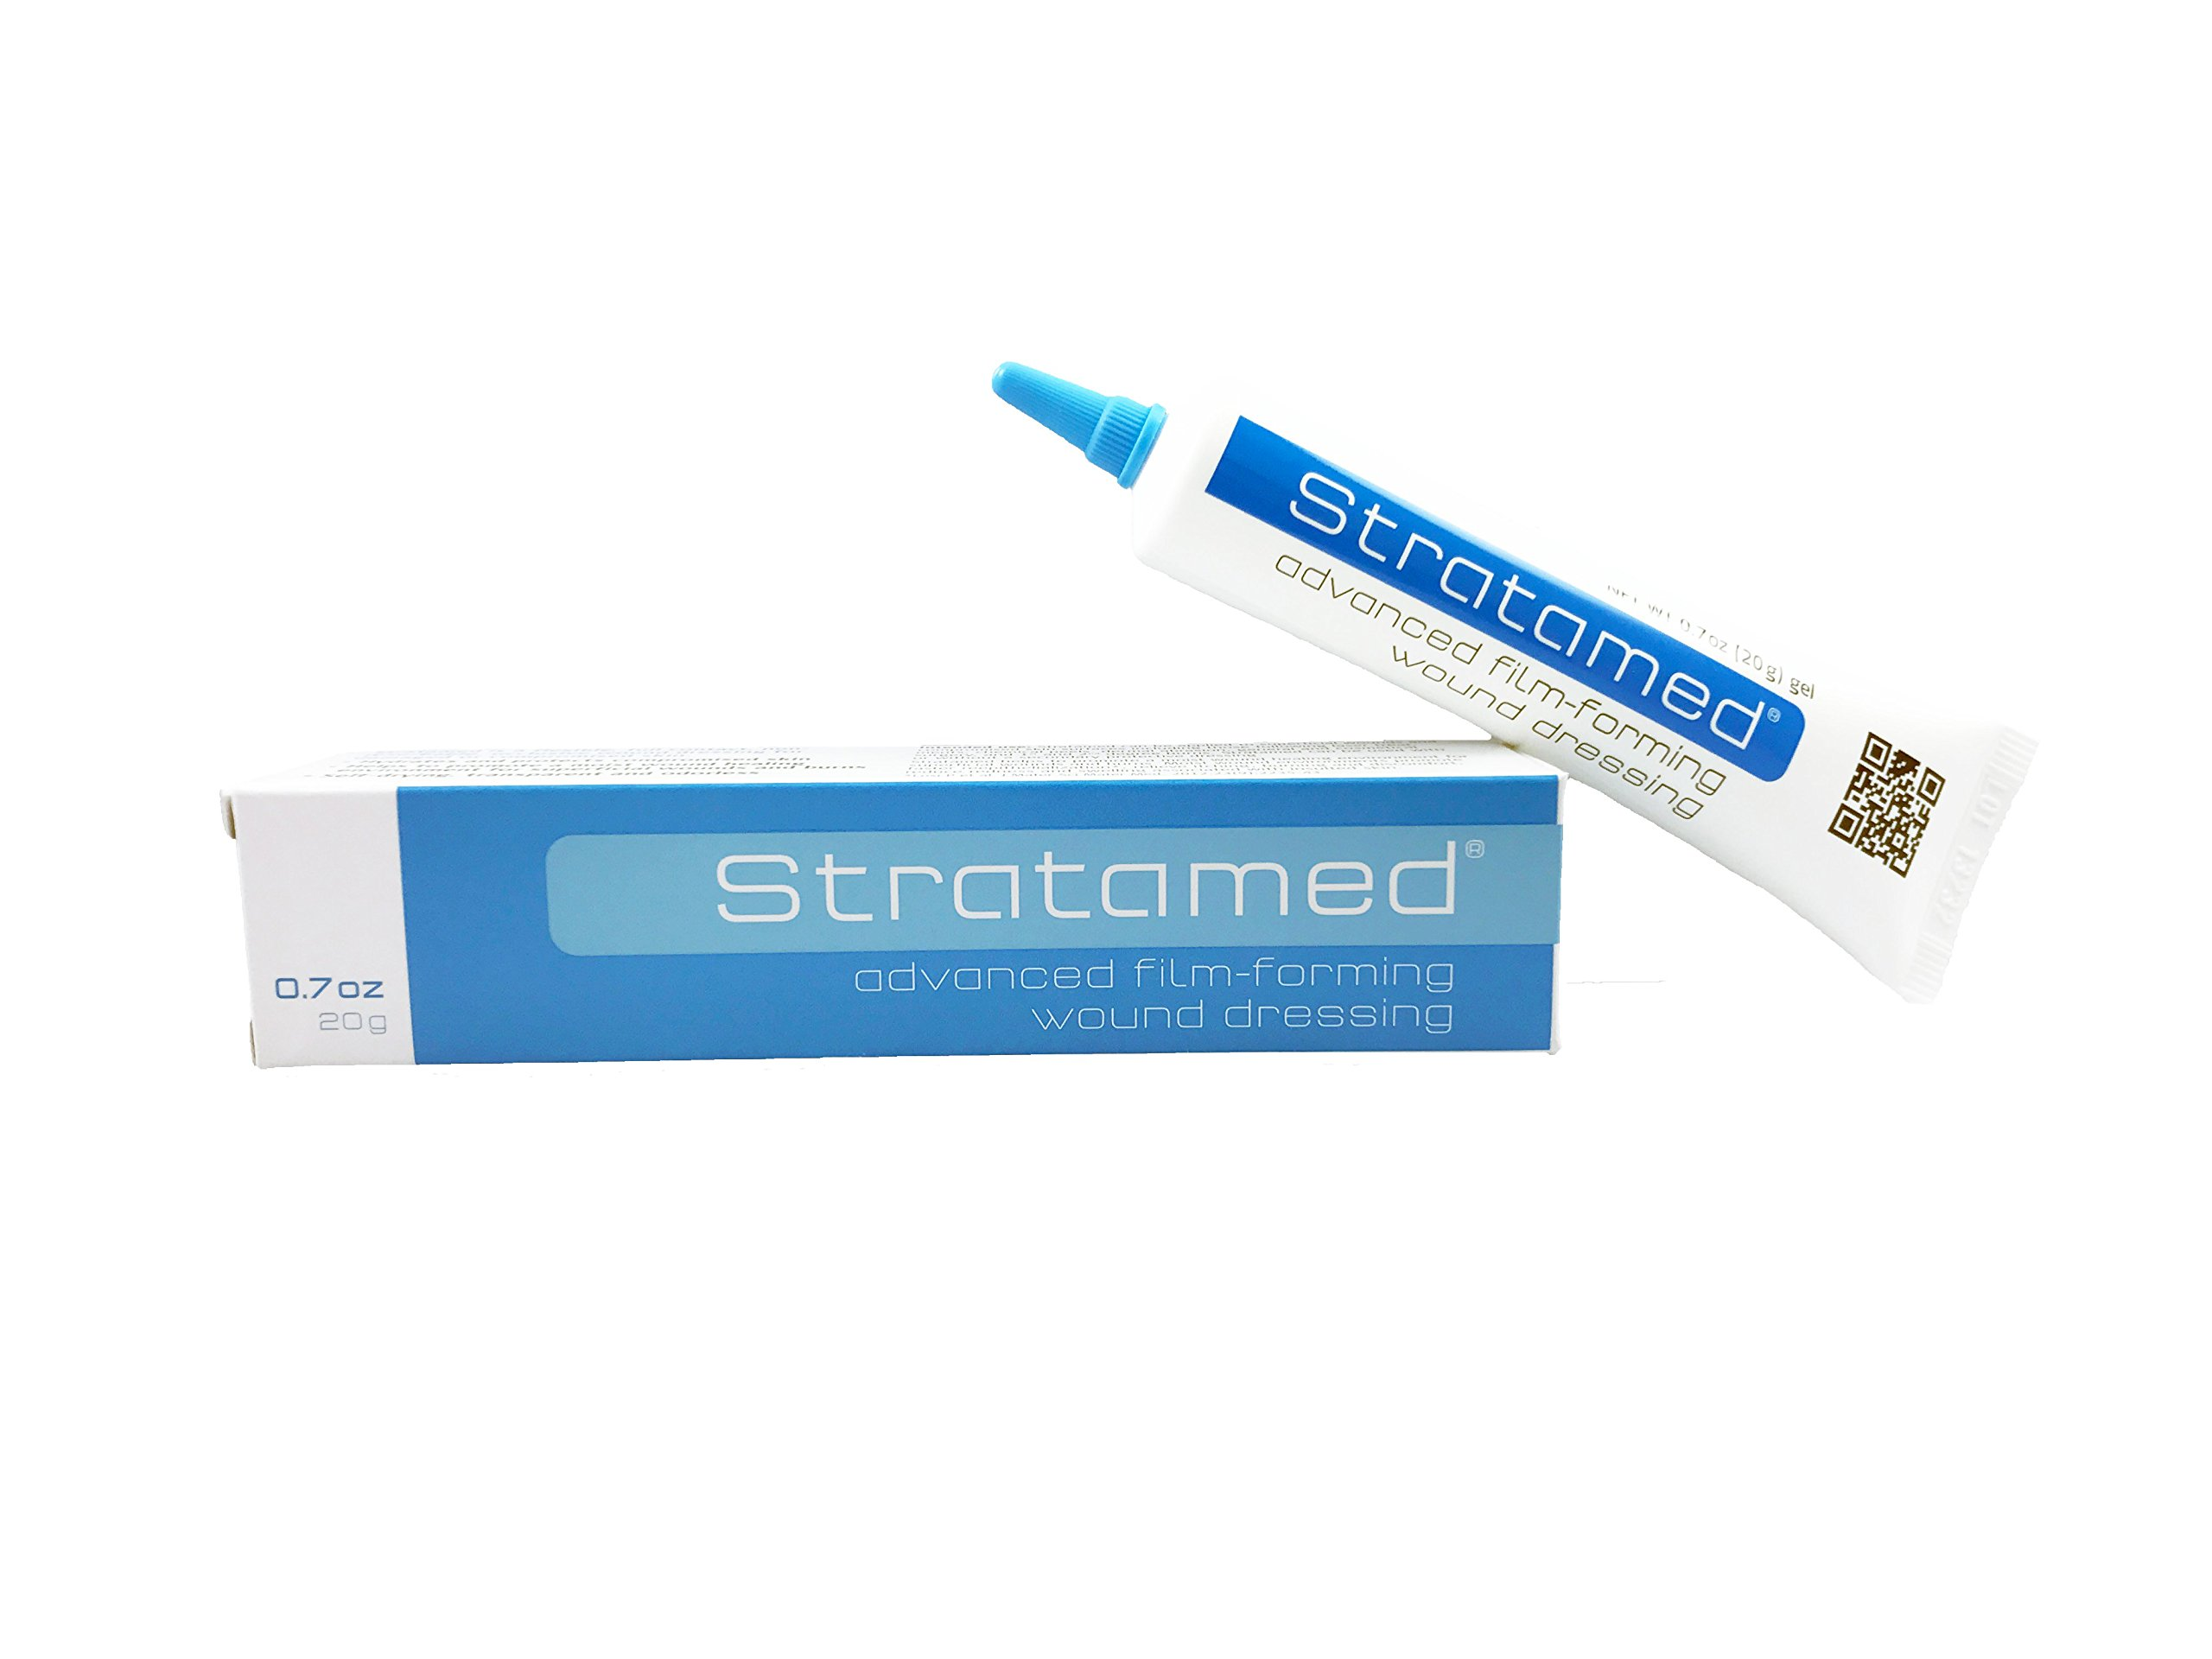 Stratamed Scar Therapy Gel - 20g